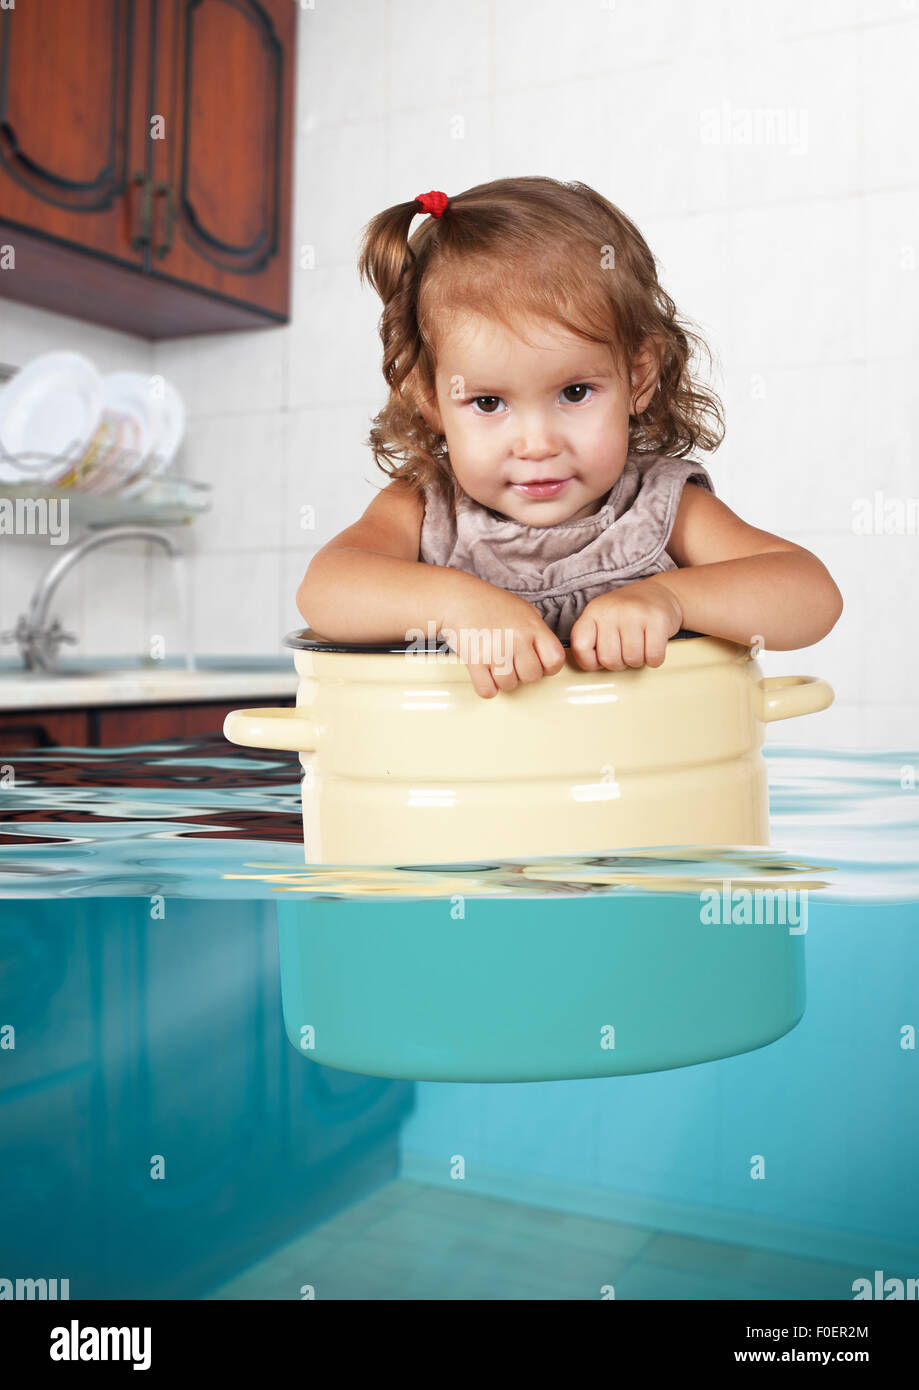 Funny little kid swim in pan in the flooded kitchen, rowdy creative concept - Stock Image